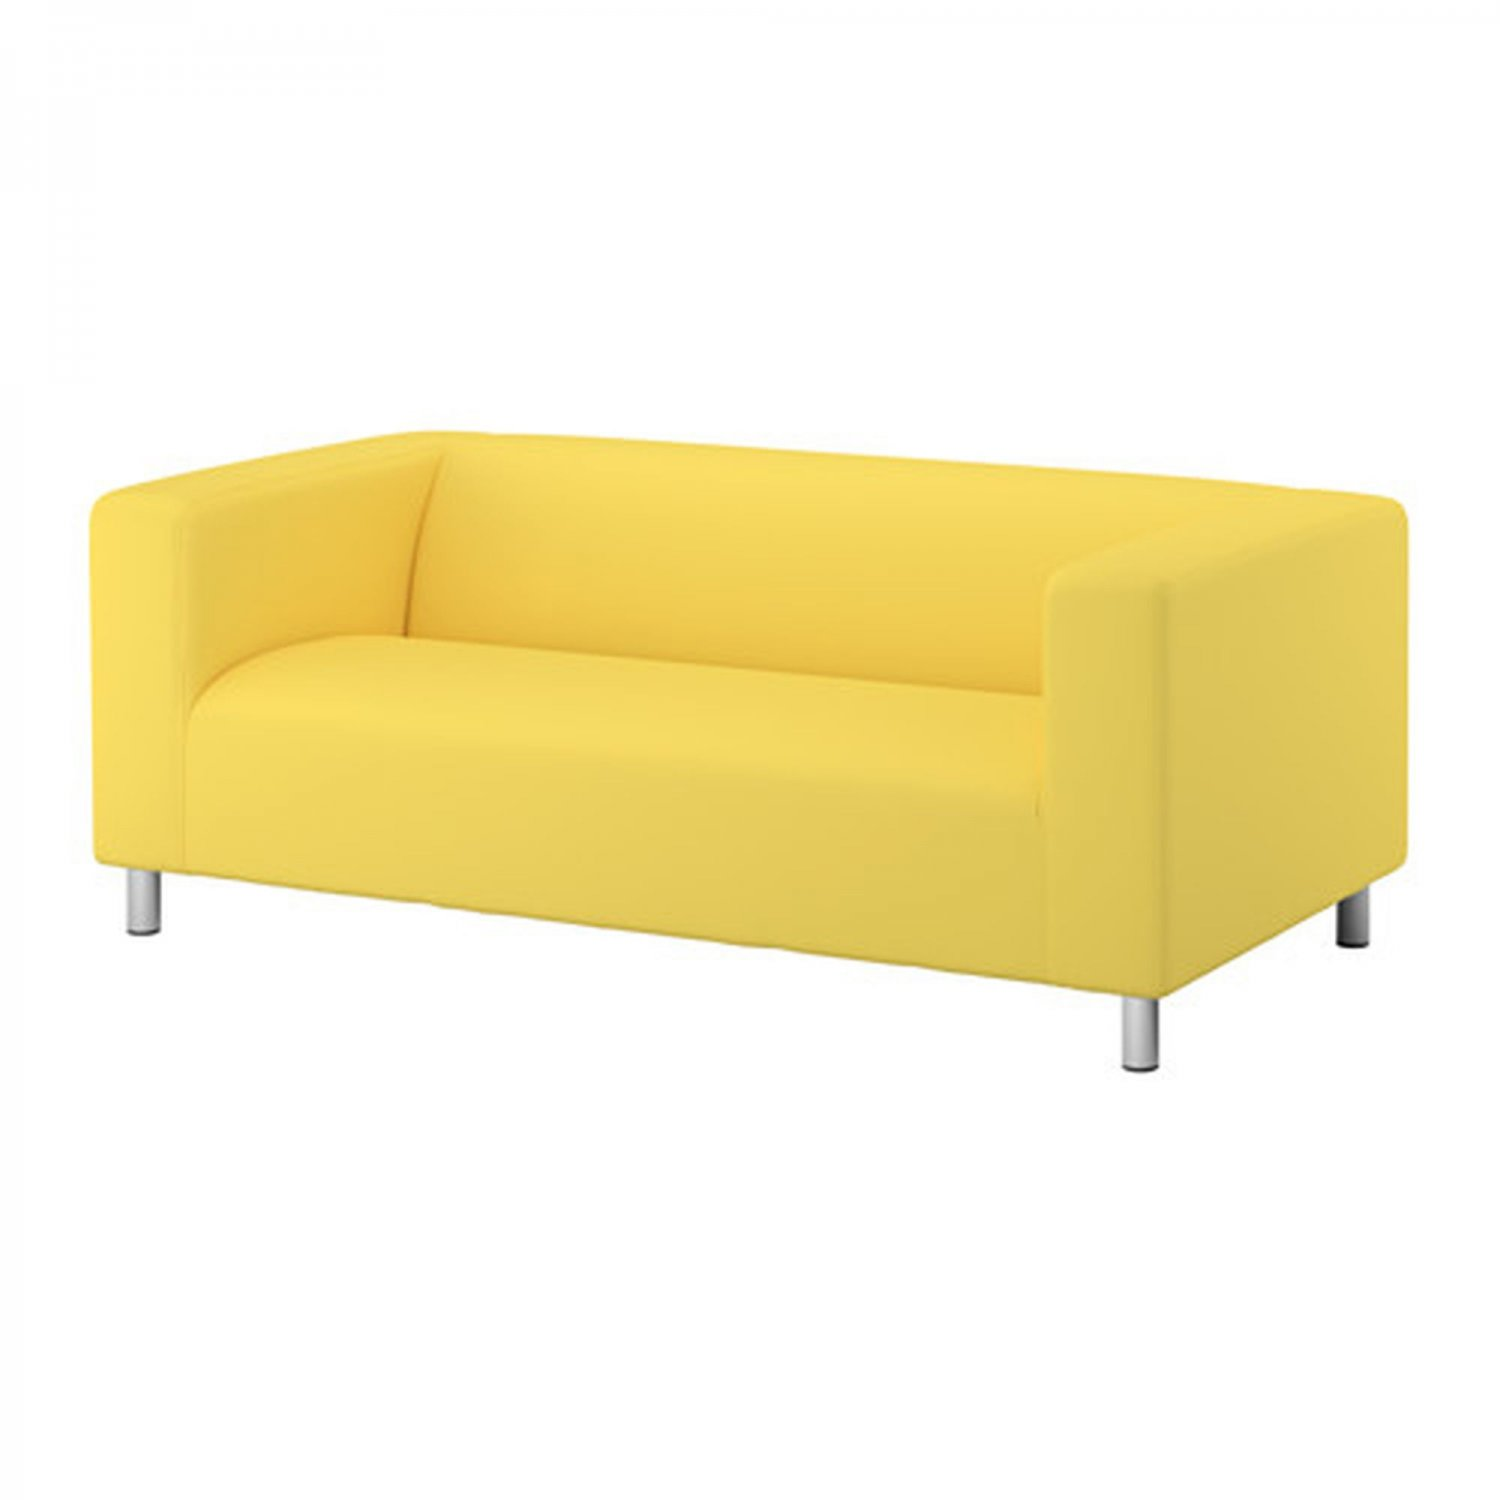 Ikea klippan loveseat sofa slipcover cover vissle yellow for Ikea divan